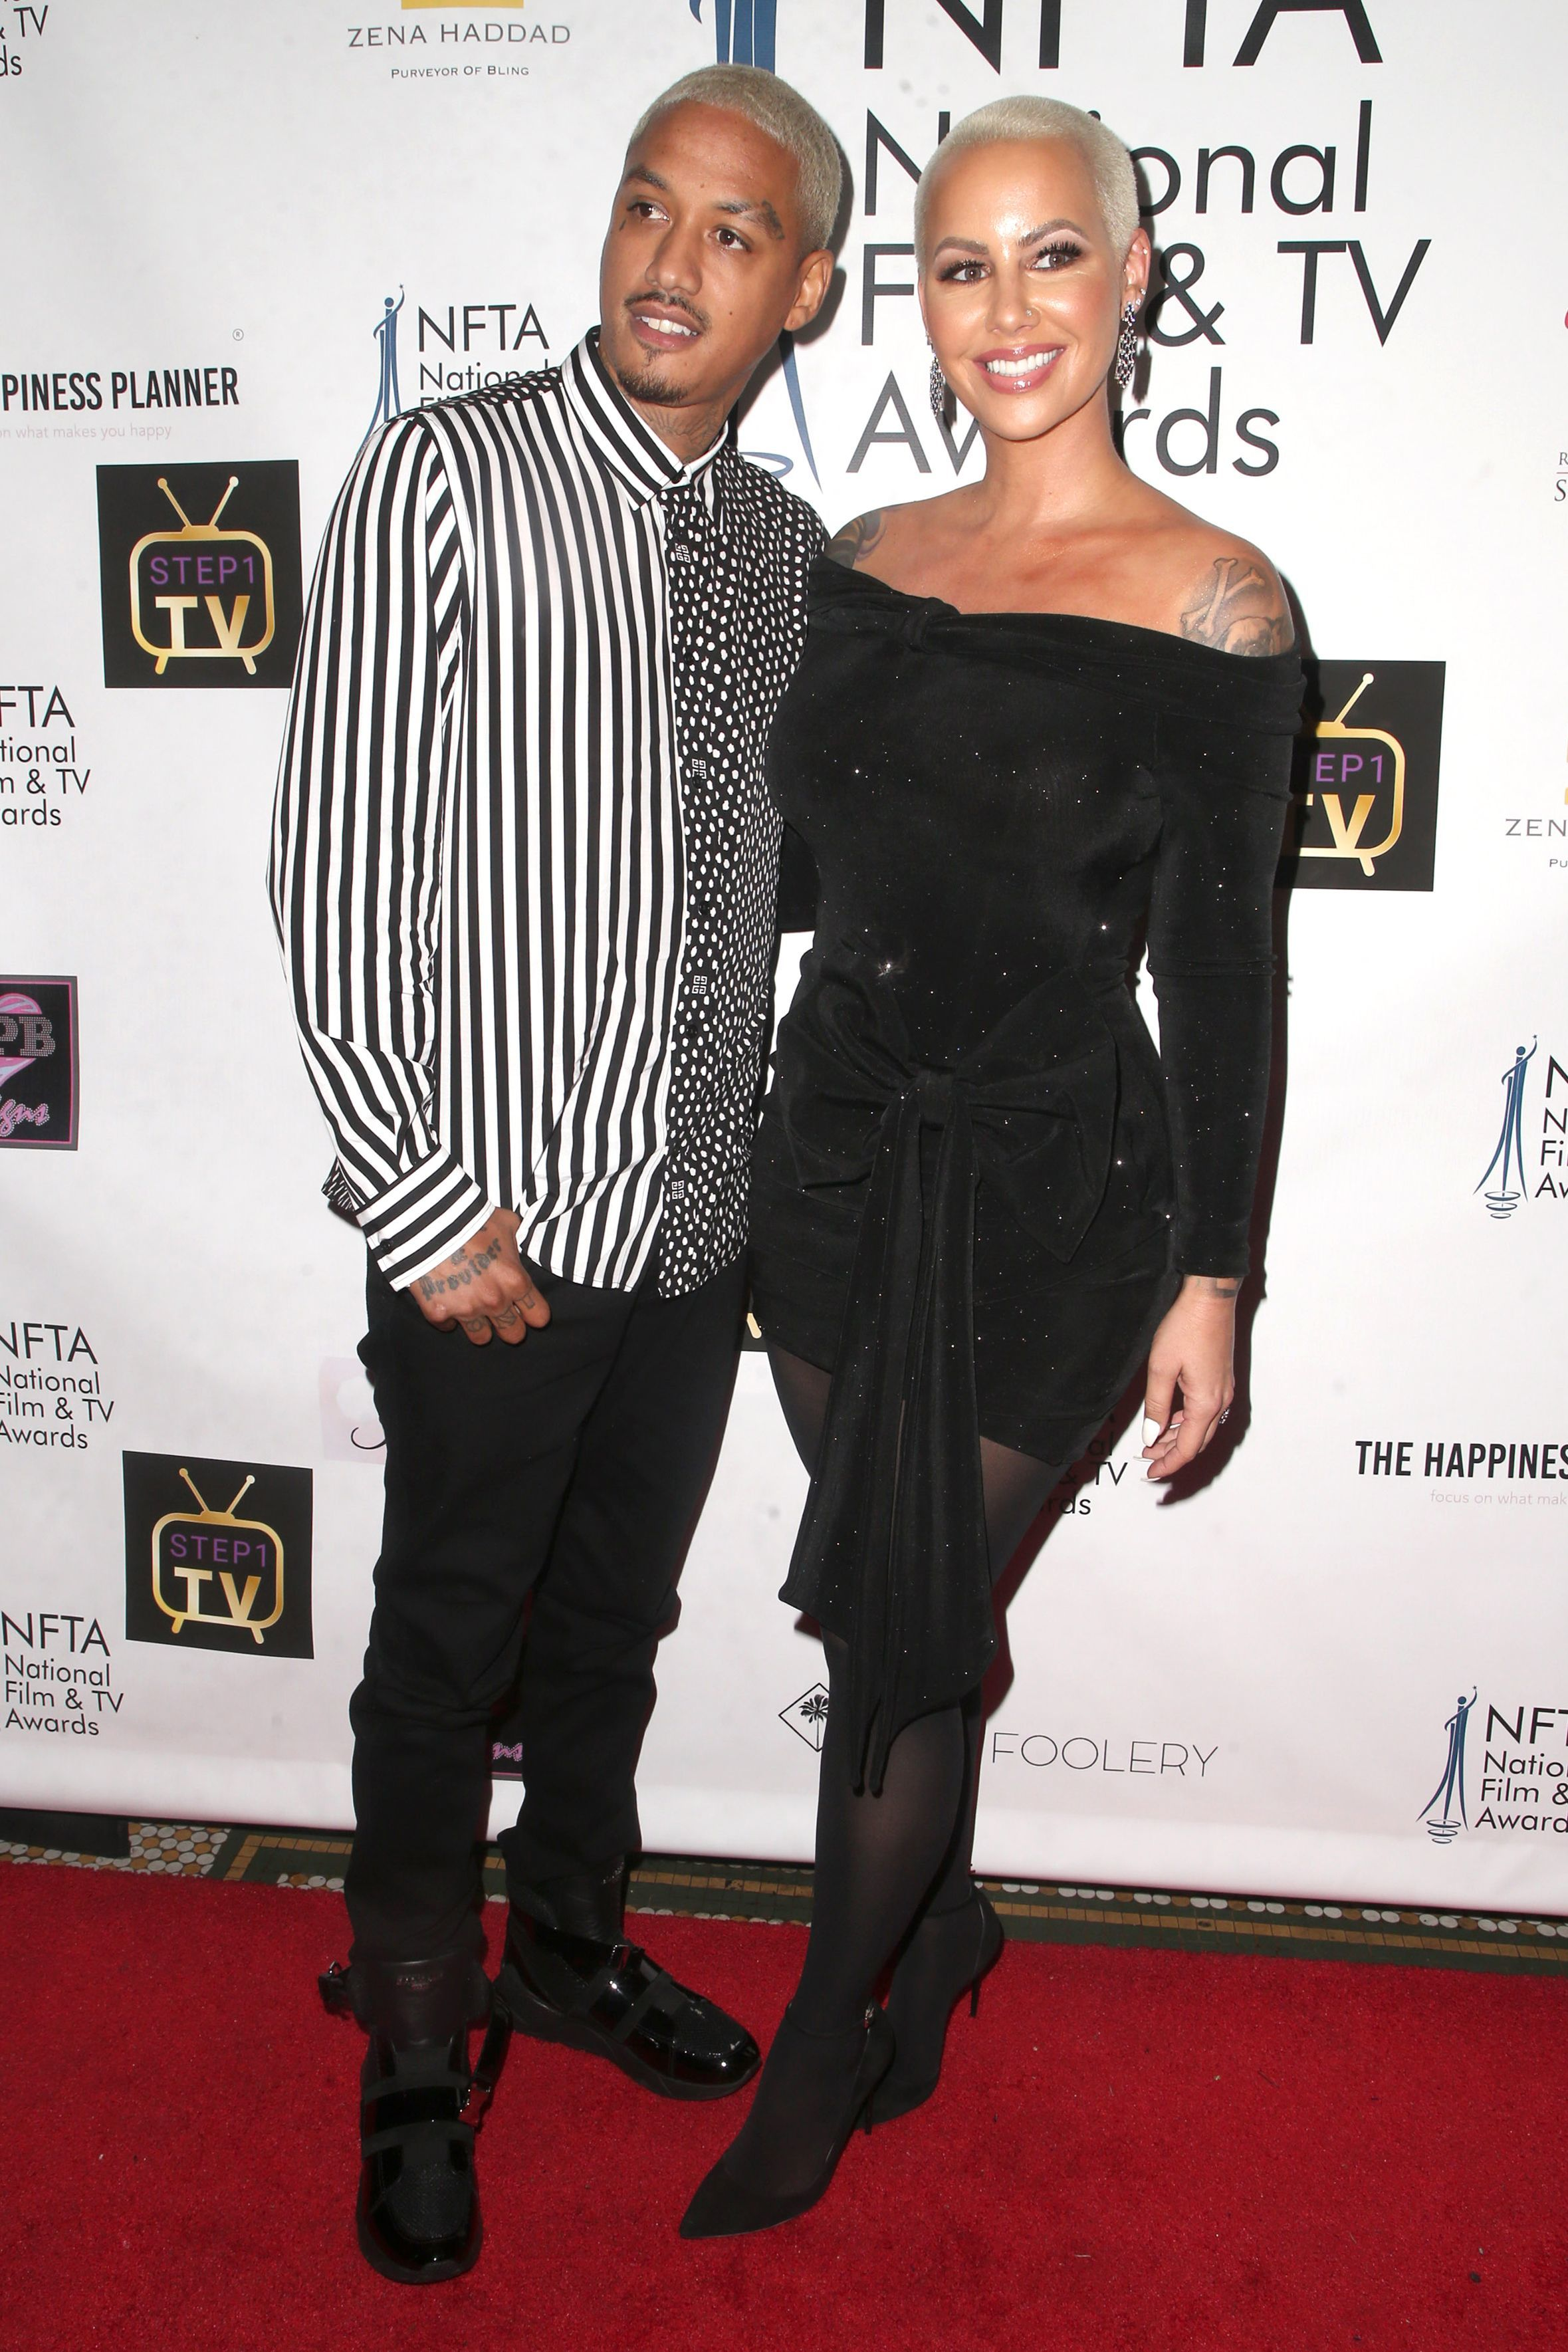 Alexander Edwards and Amber Rose attend The National Film and Television Awards in Los Angeles on DEc. 5, 2018.